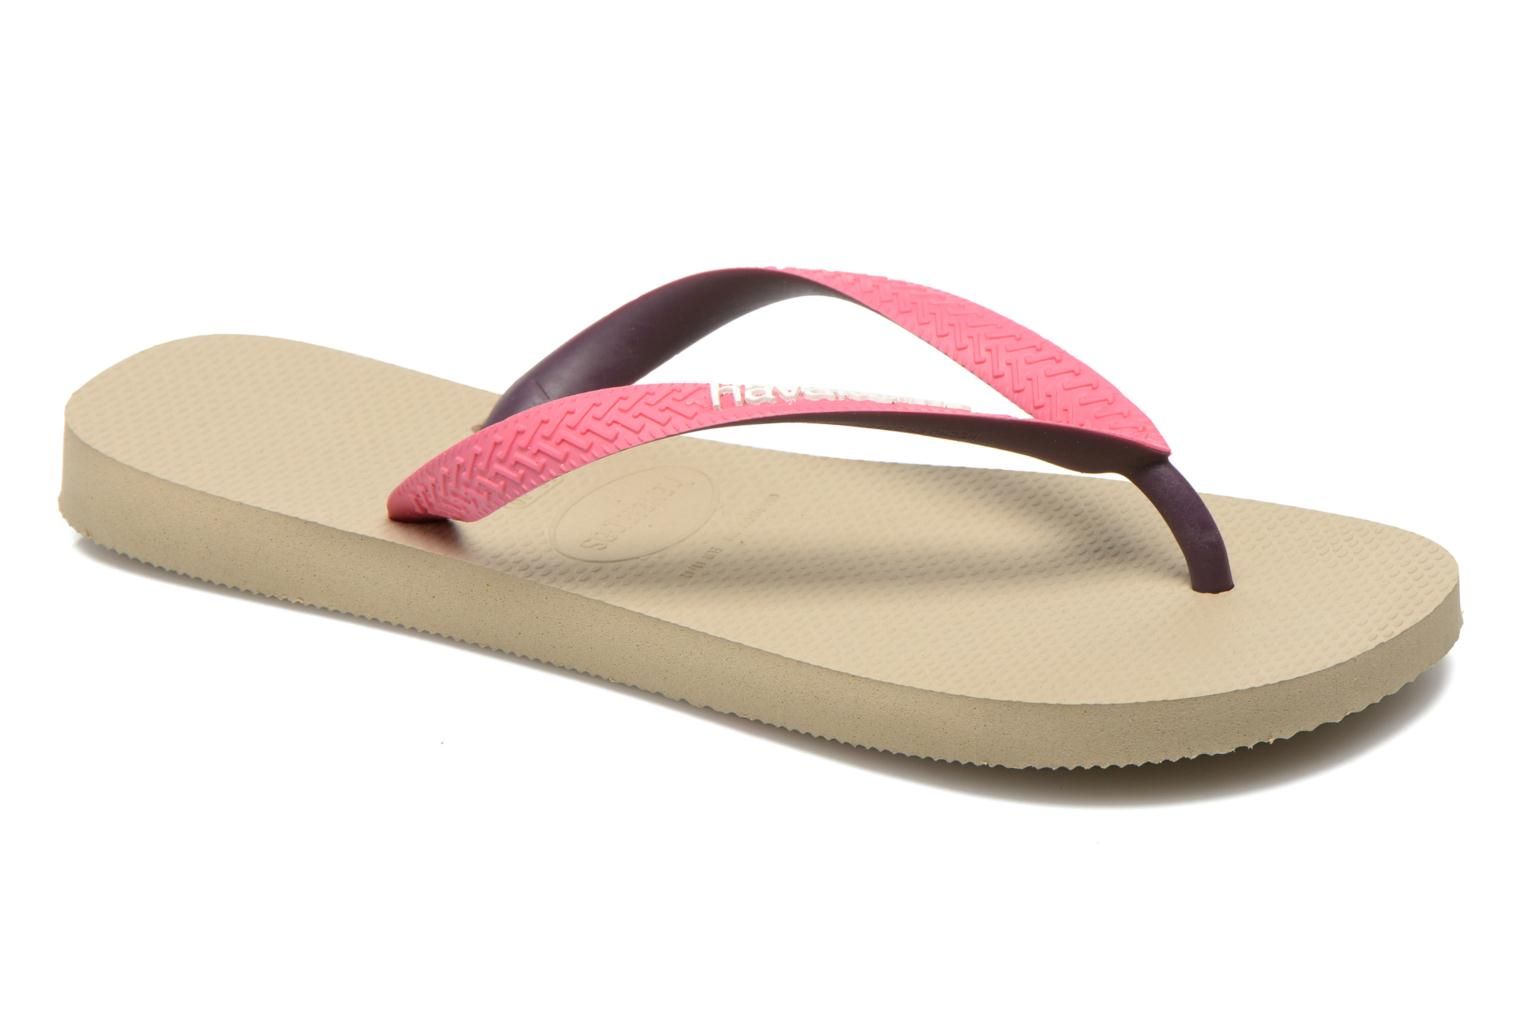 Marques Chaussure femme Havaianas femme Top Mix F Sand Grey Pink